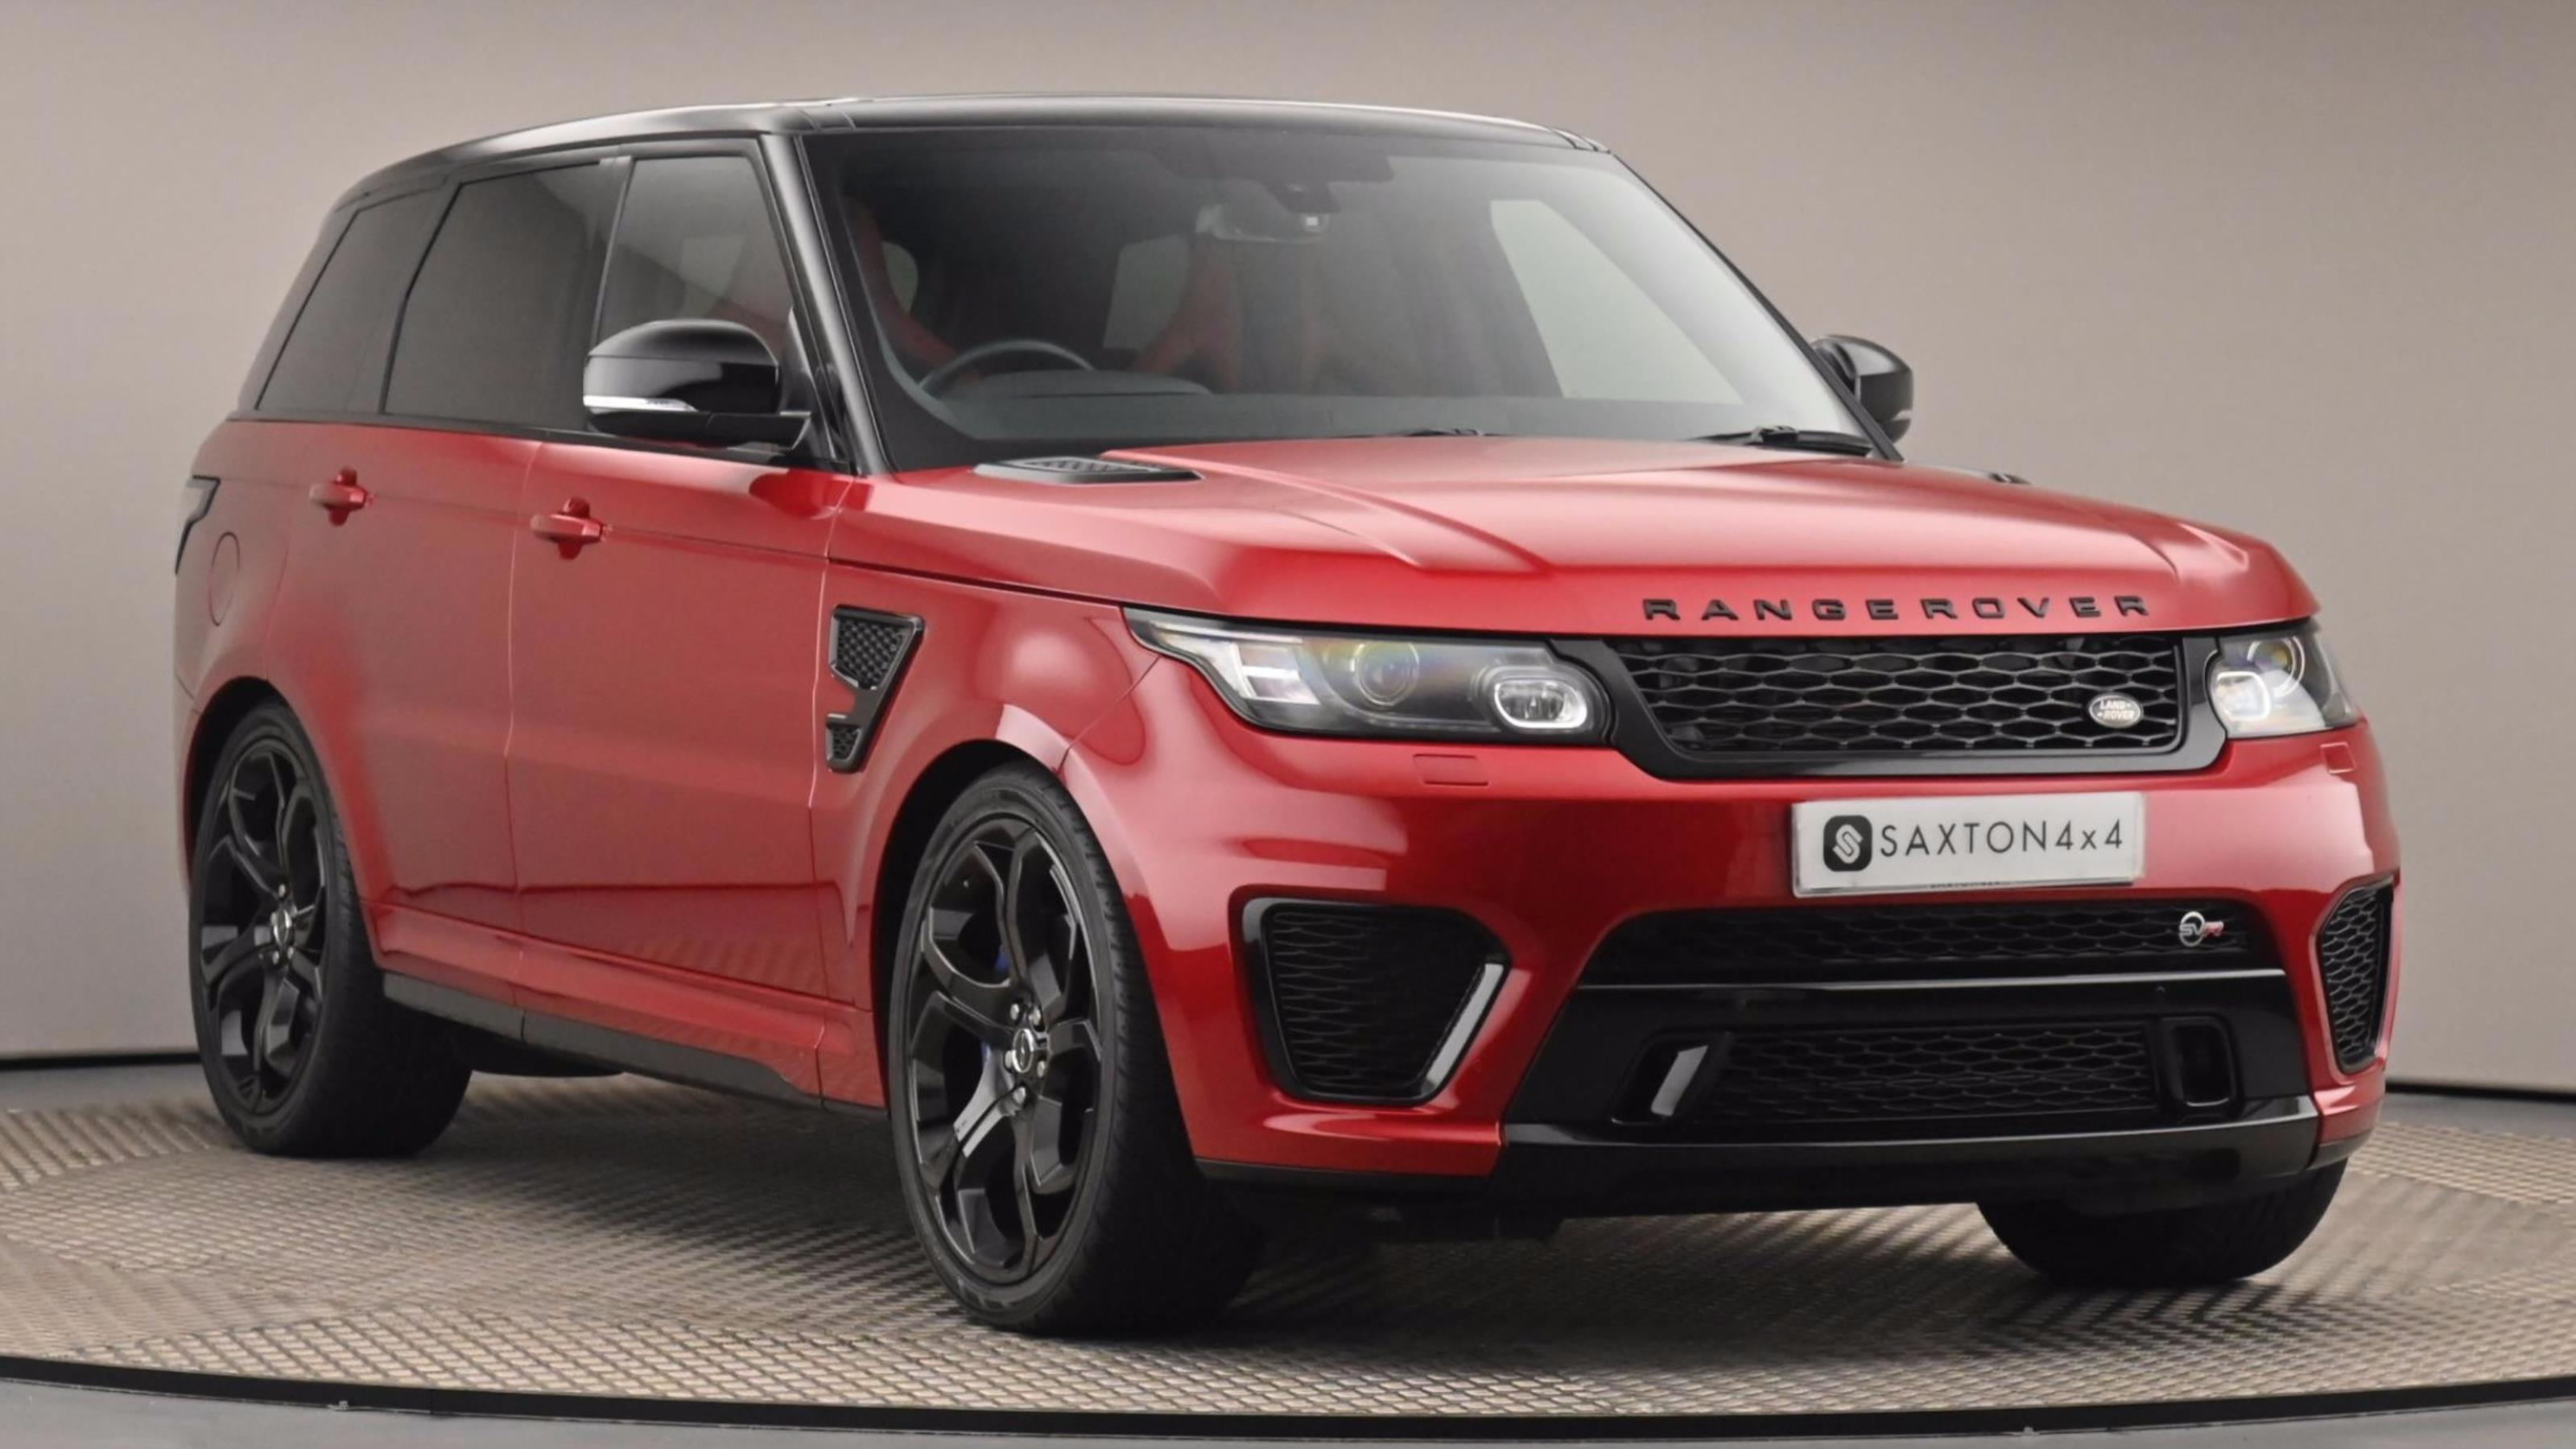 Used 2017 Land Rover RANGE ROVER SPORT 5.0 V8 S/C SVR 5dr Auto Red at Saxton4x4